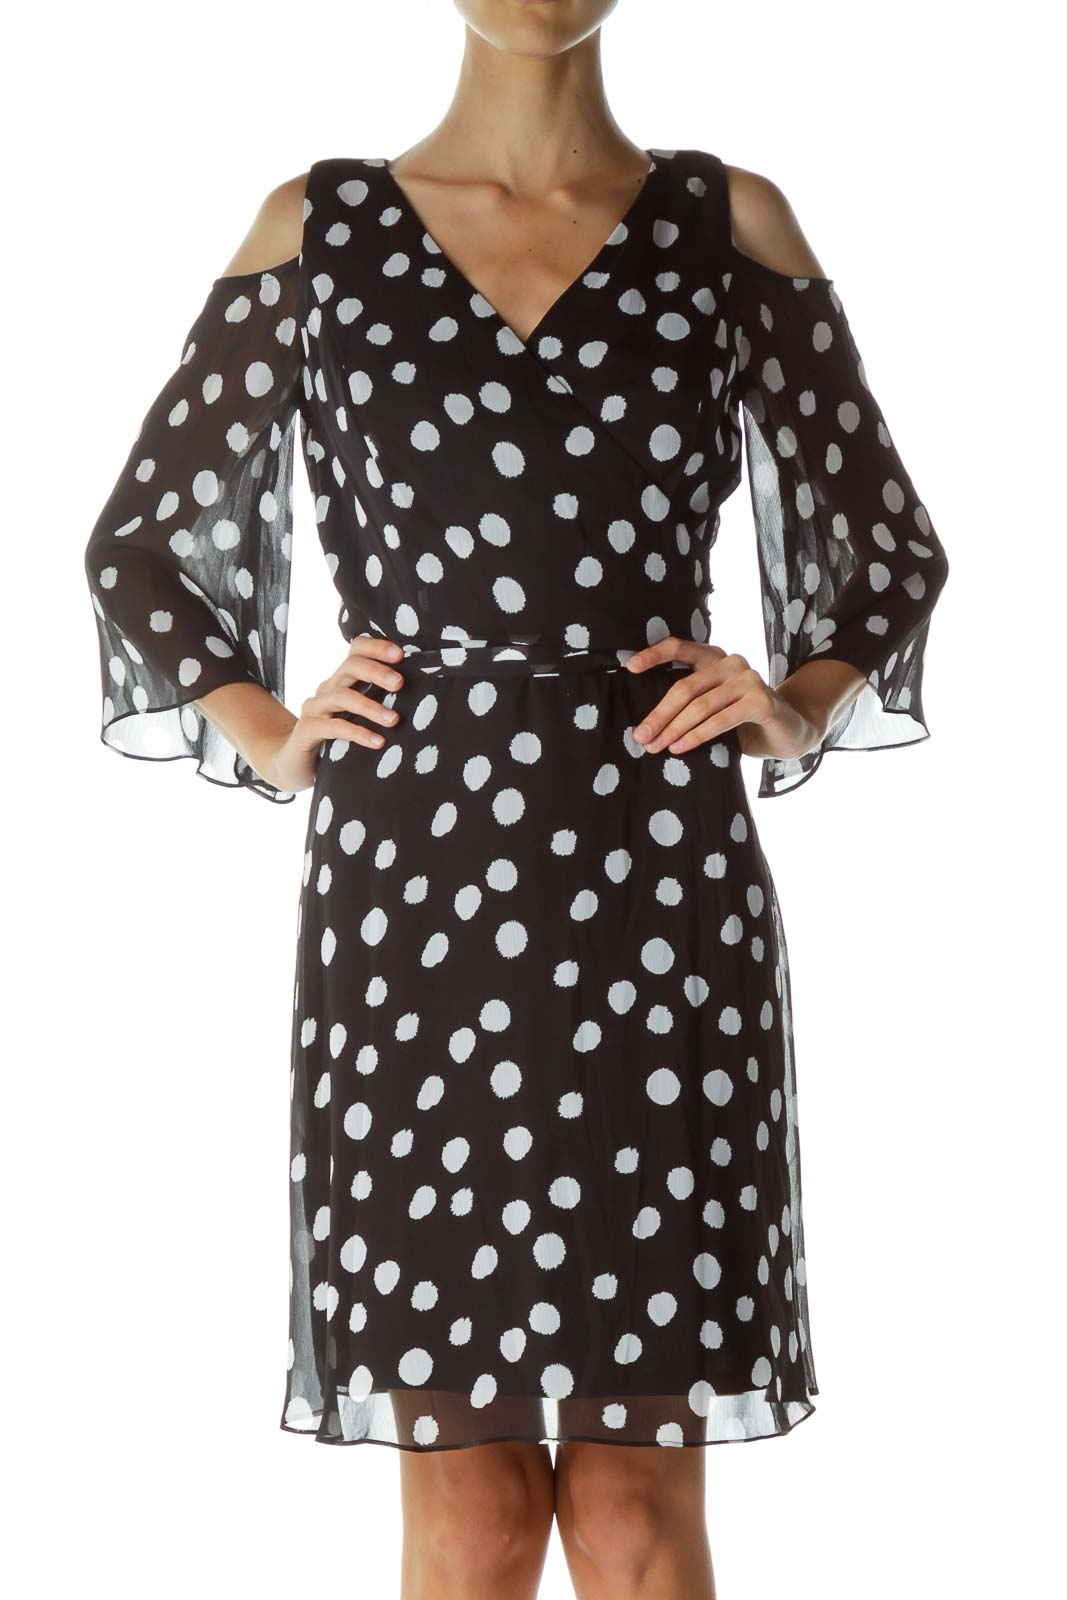 Black White Polka Dot Cold Shoulder Dress